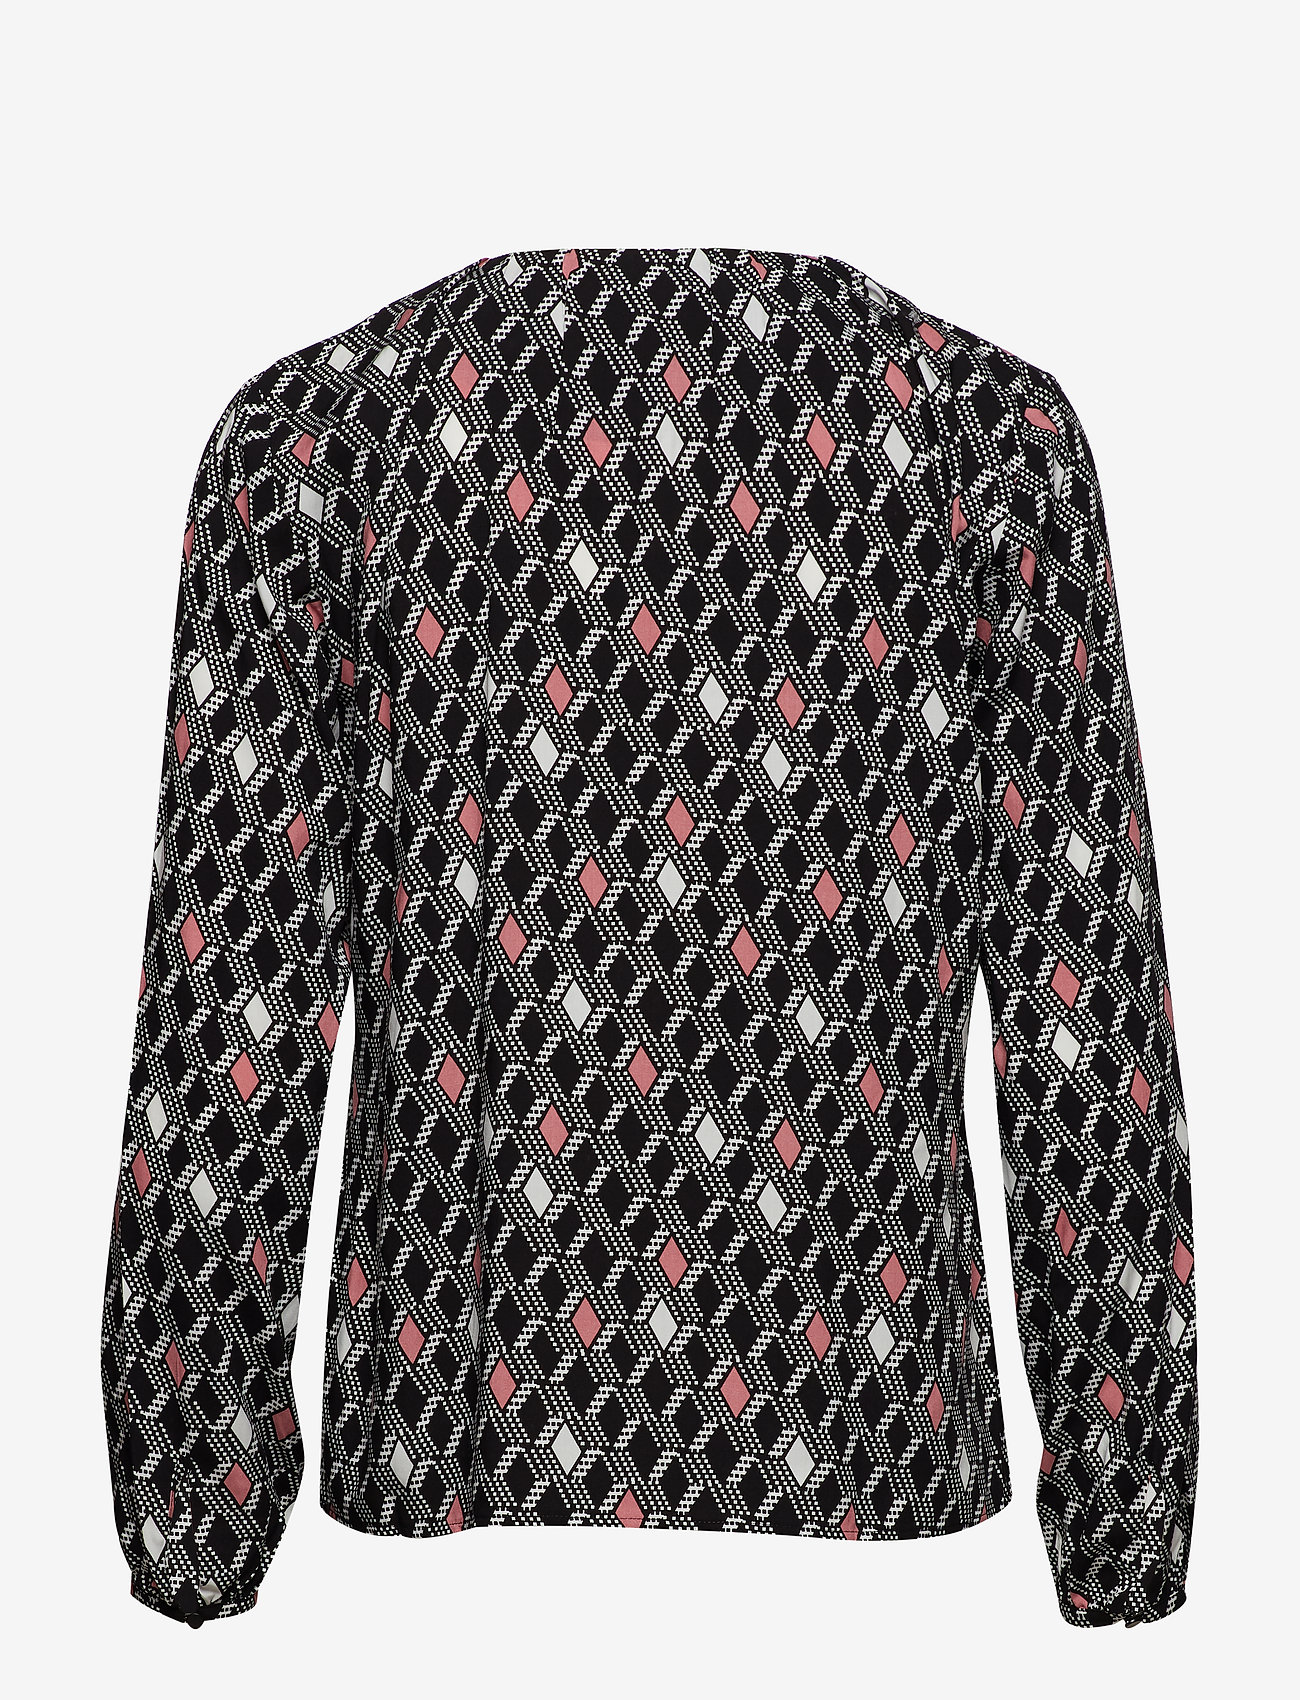 Taifun BLOUSE LONG-SLEEVE - Bluser & Skjorter BLACK PATTERNED - Dameklær Spesialtilbud